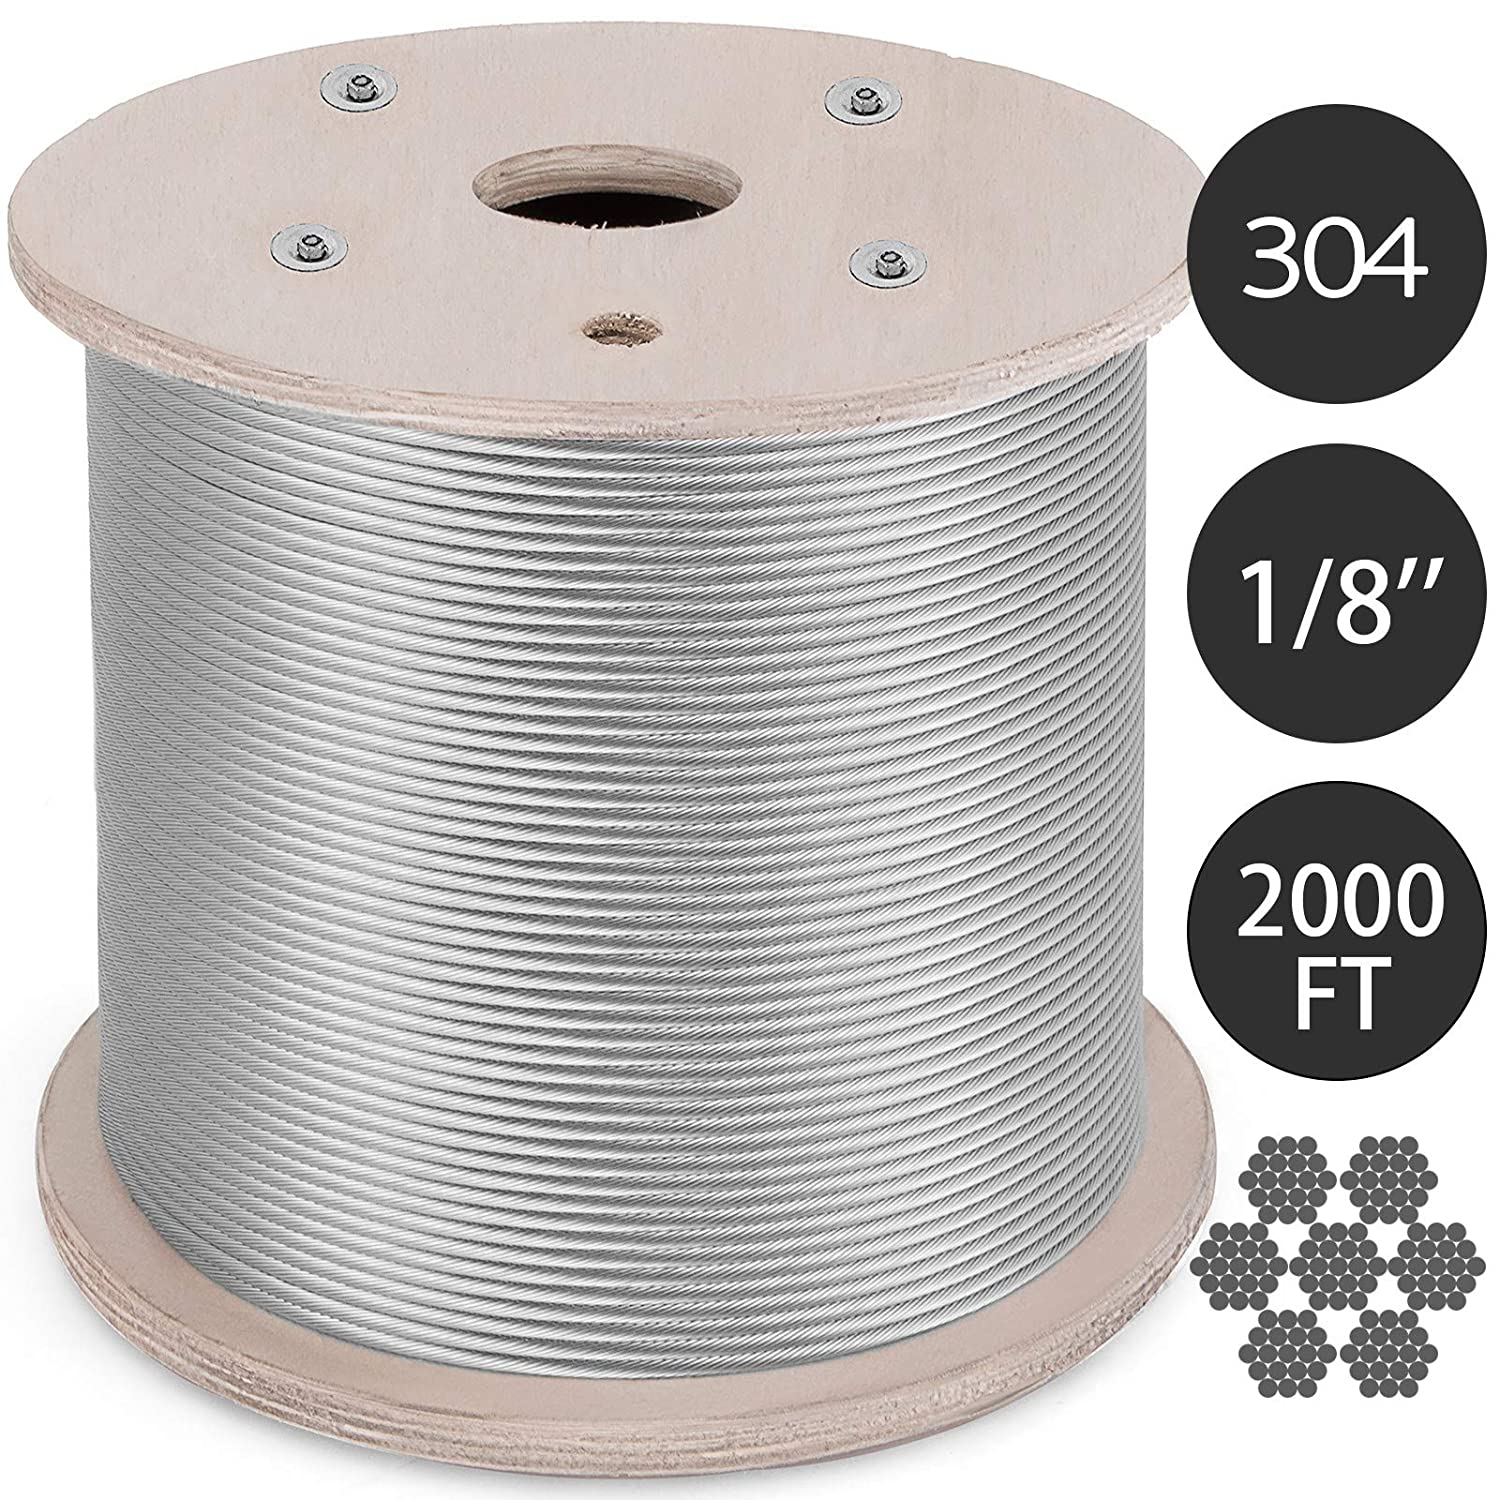 3//16 Inch-100Feet Mophorn 304 Stainless Steel Cable 3//16 Inch 7 X 19 Steel Wire Rope 100Feet Steel Cable for Railing Decking DIY Balustrade